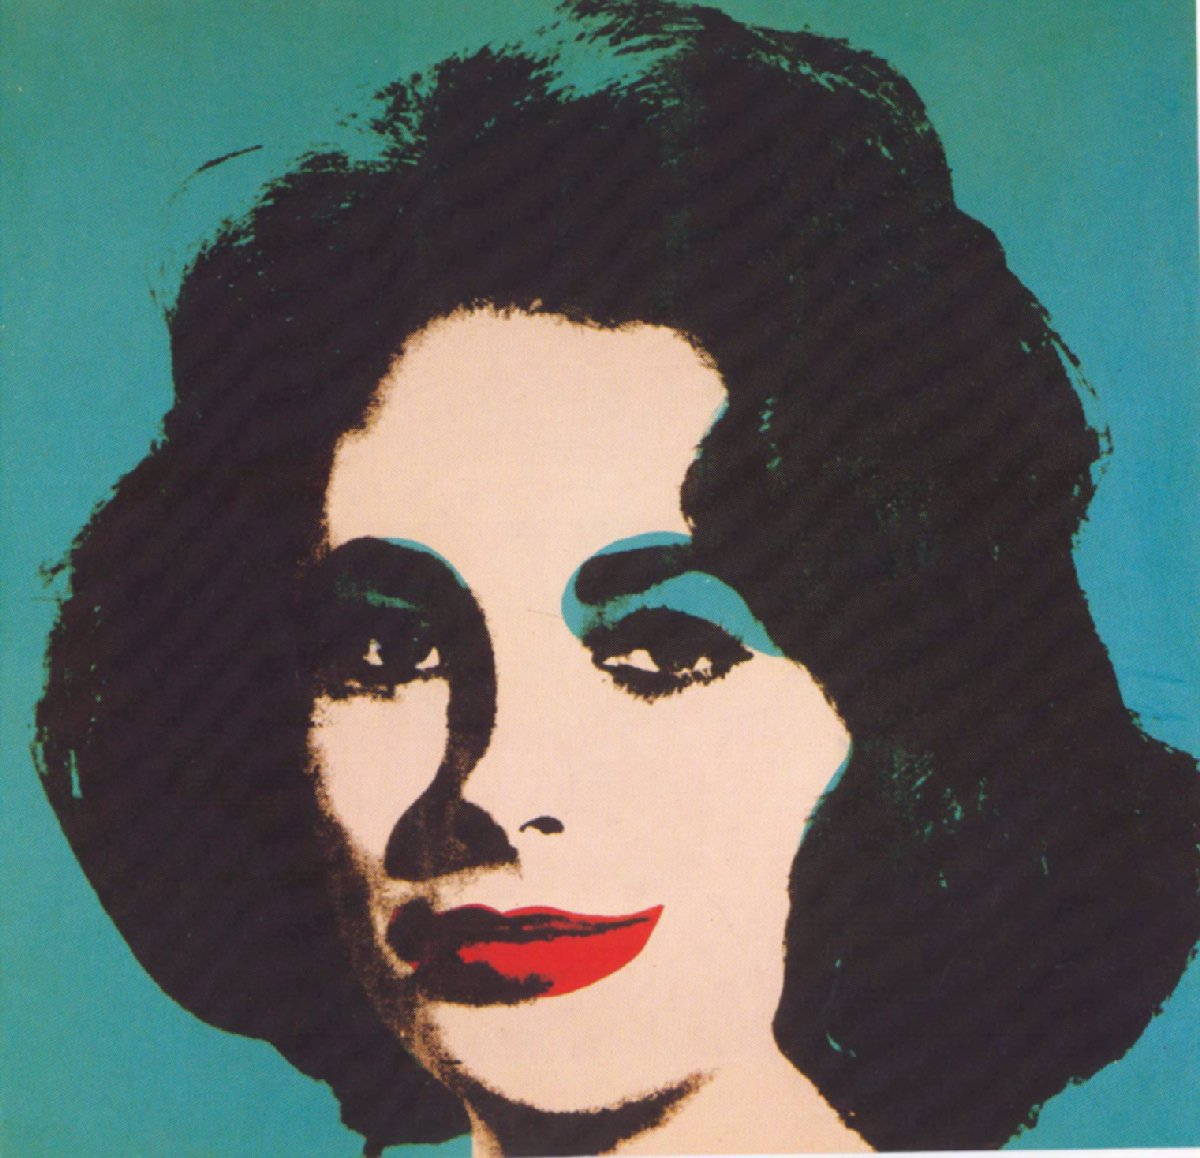 Andy warhol the prince of pop art the art history archive for Andy warhol famous works